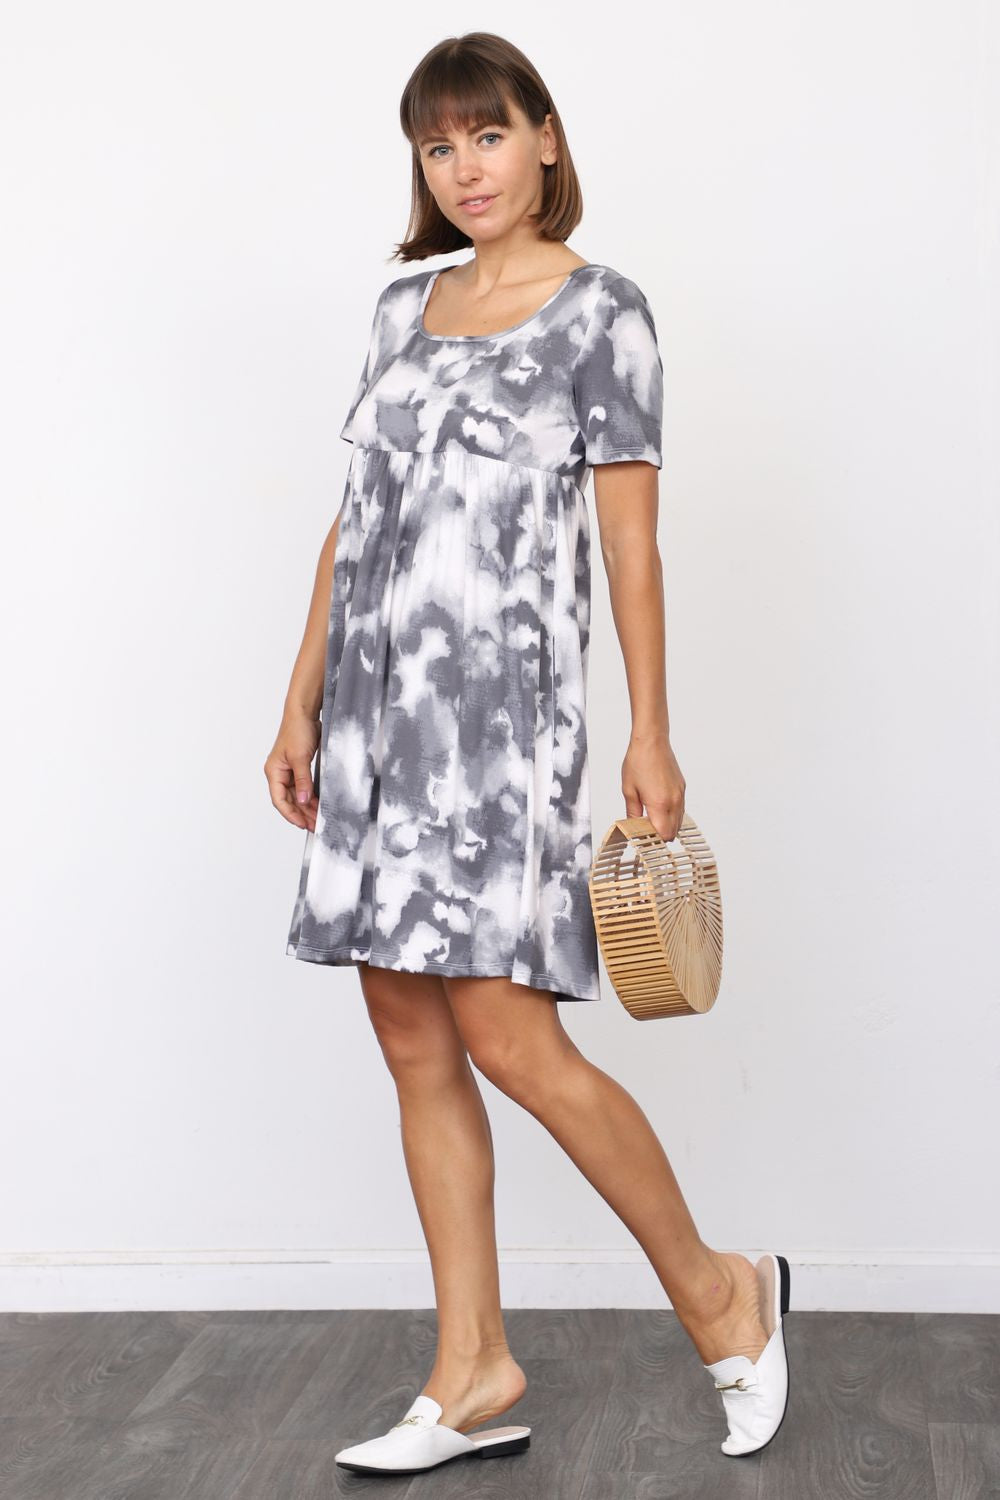 Charcoal Marble Tie Dye Short Sleeve Empire Waist Mini Dress